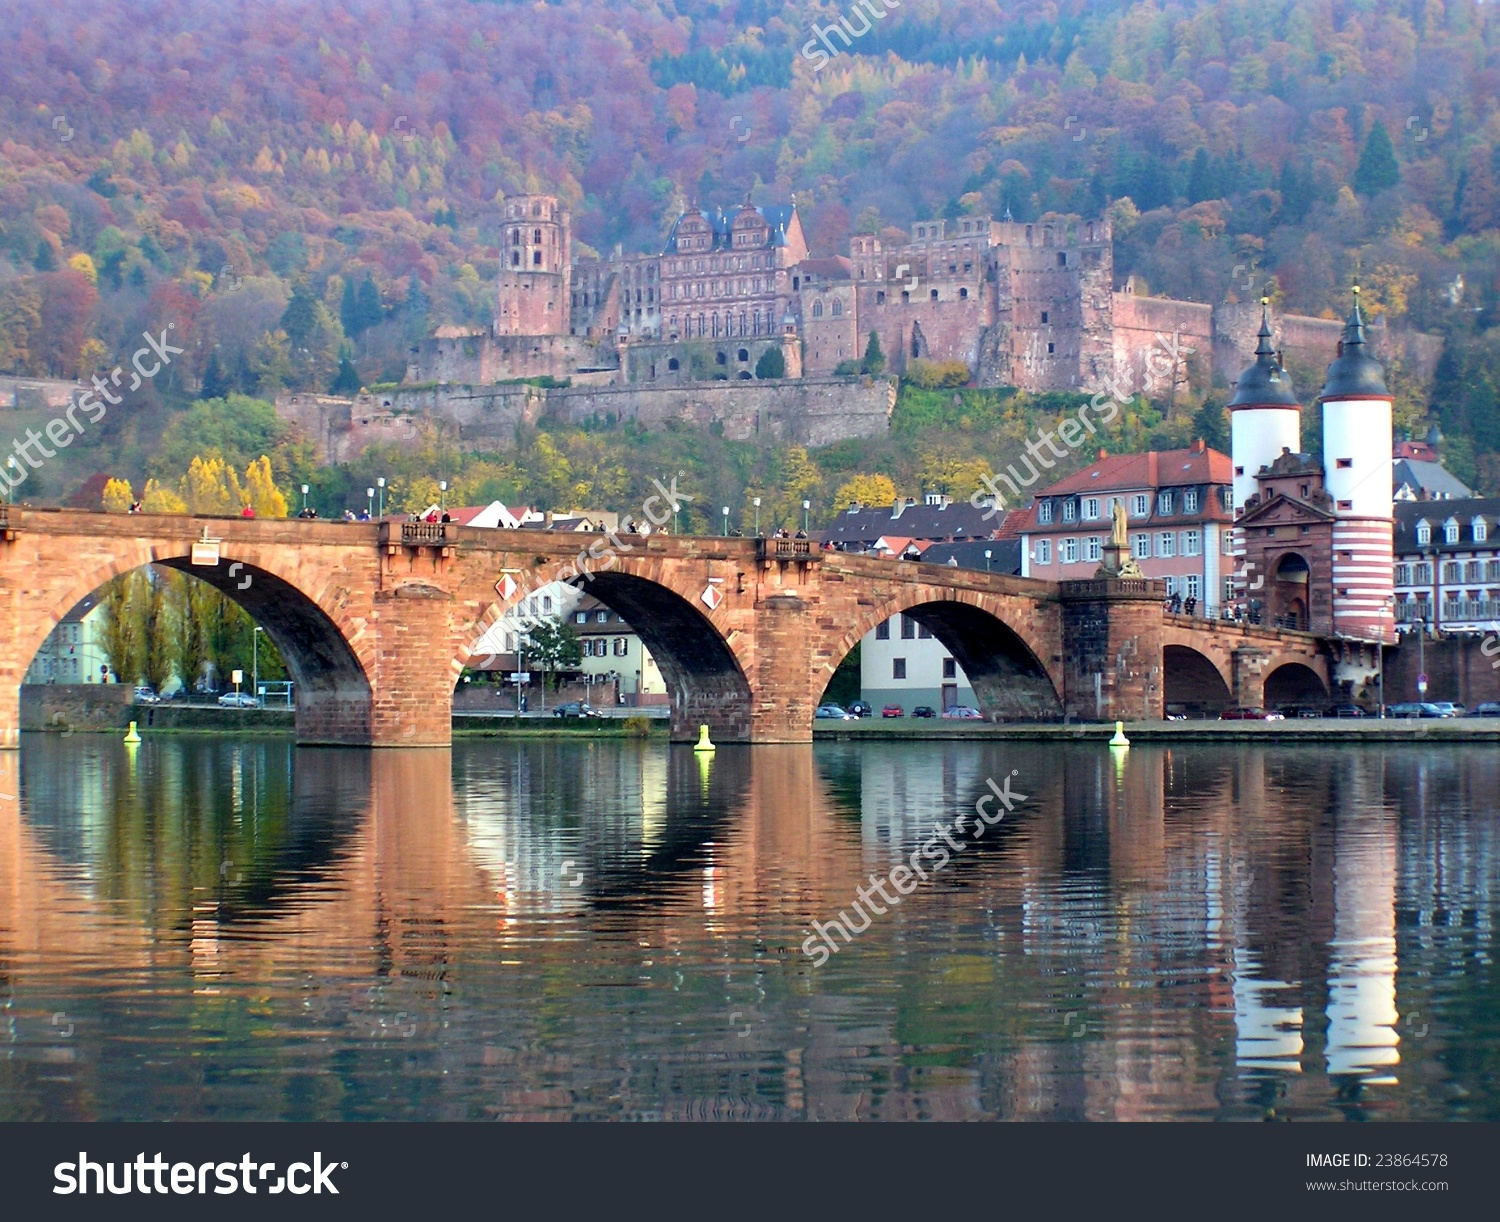 Karltheodor Bridge River Neckar Heidelberg Castle Stock Photo.